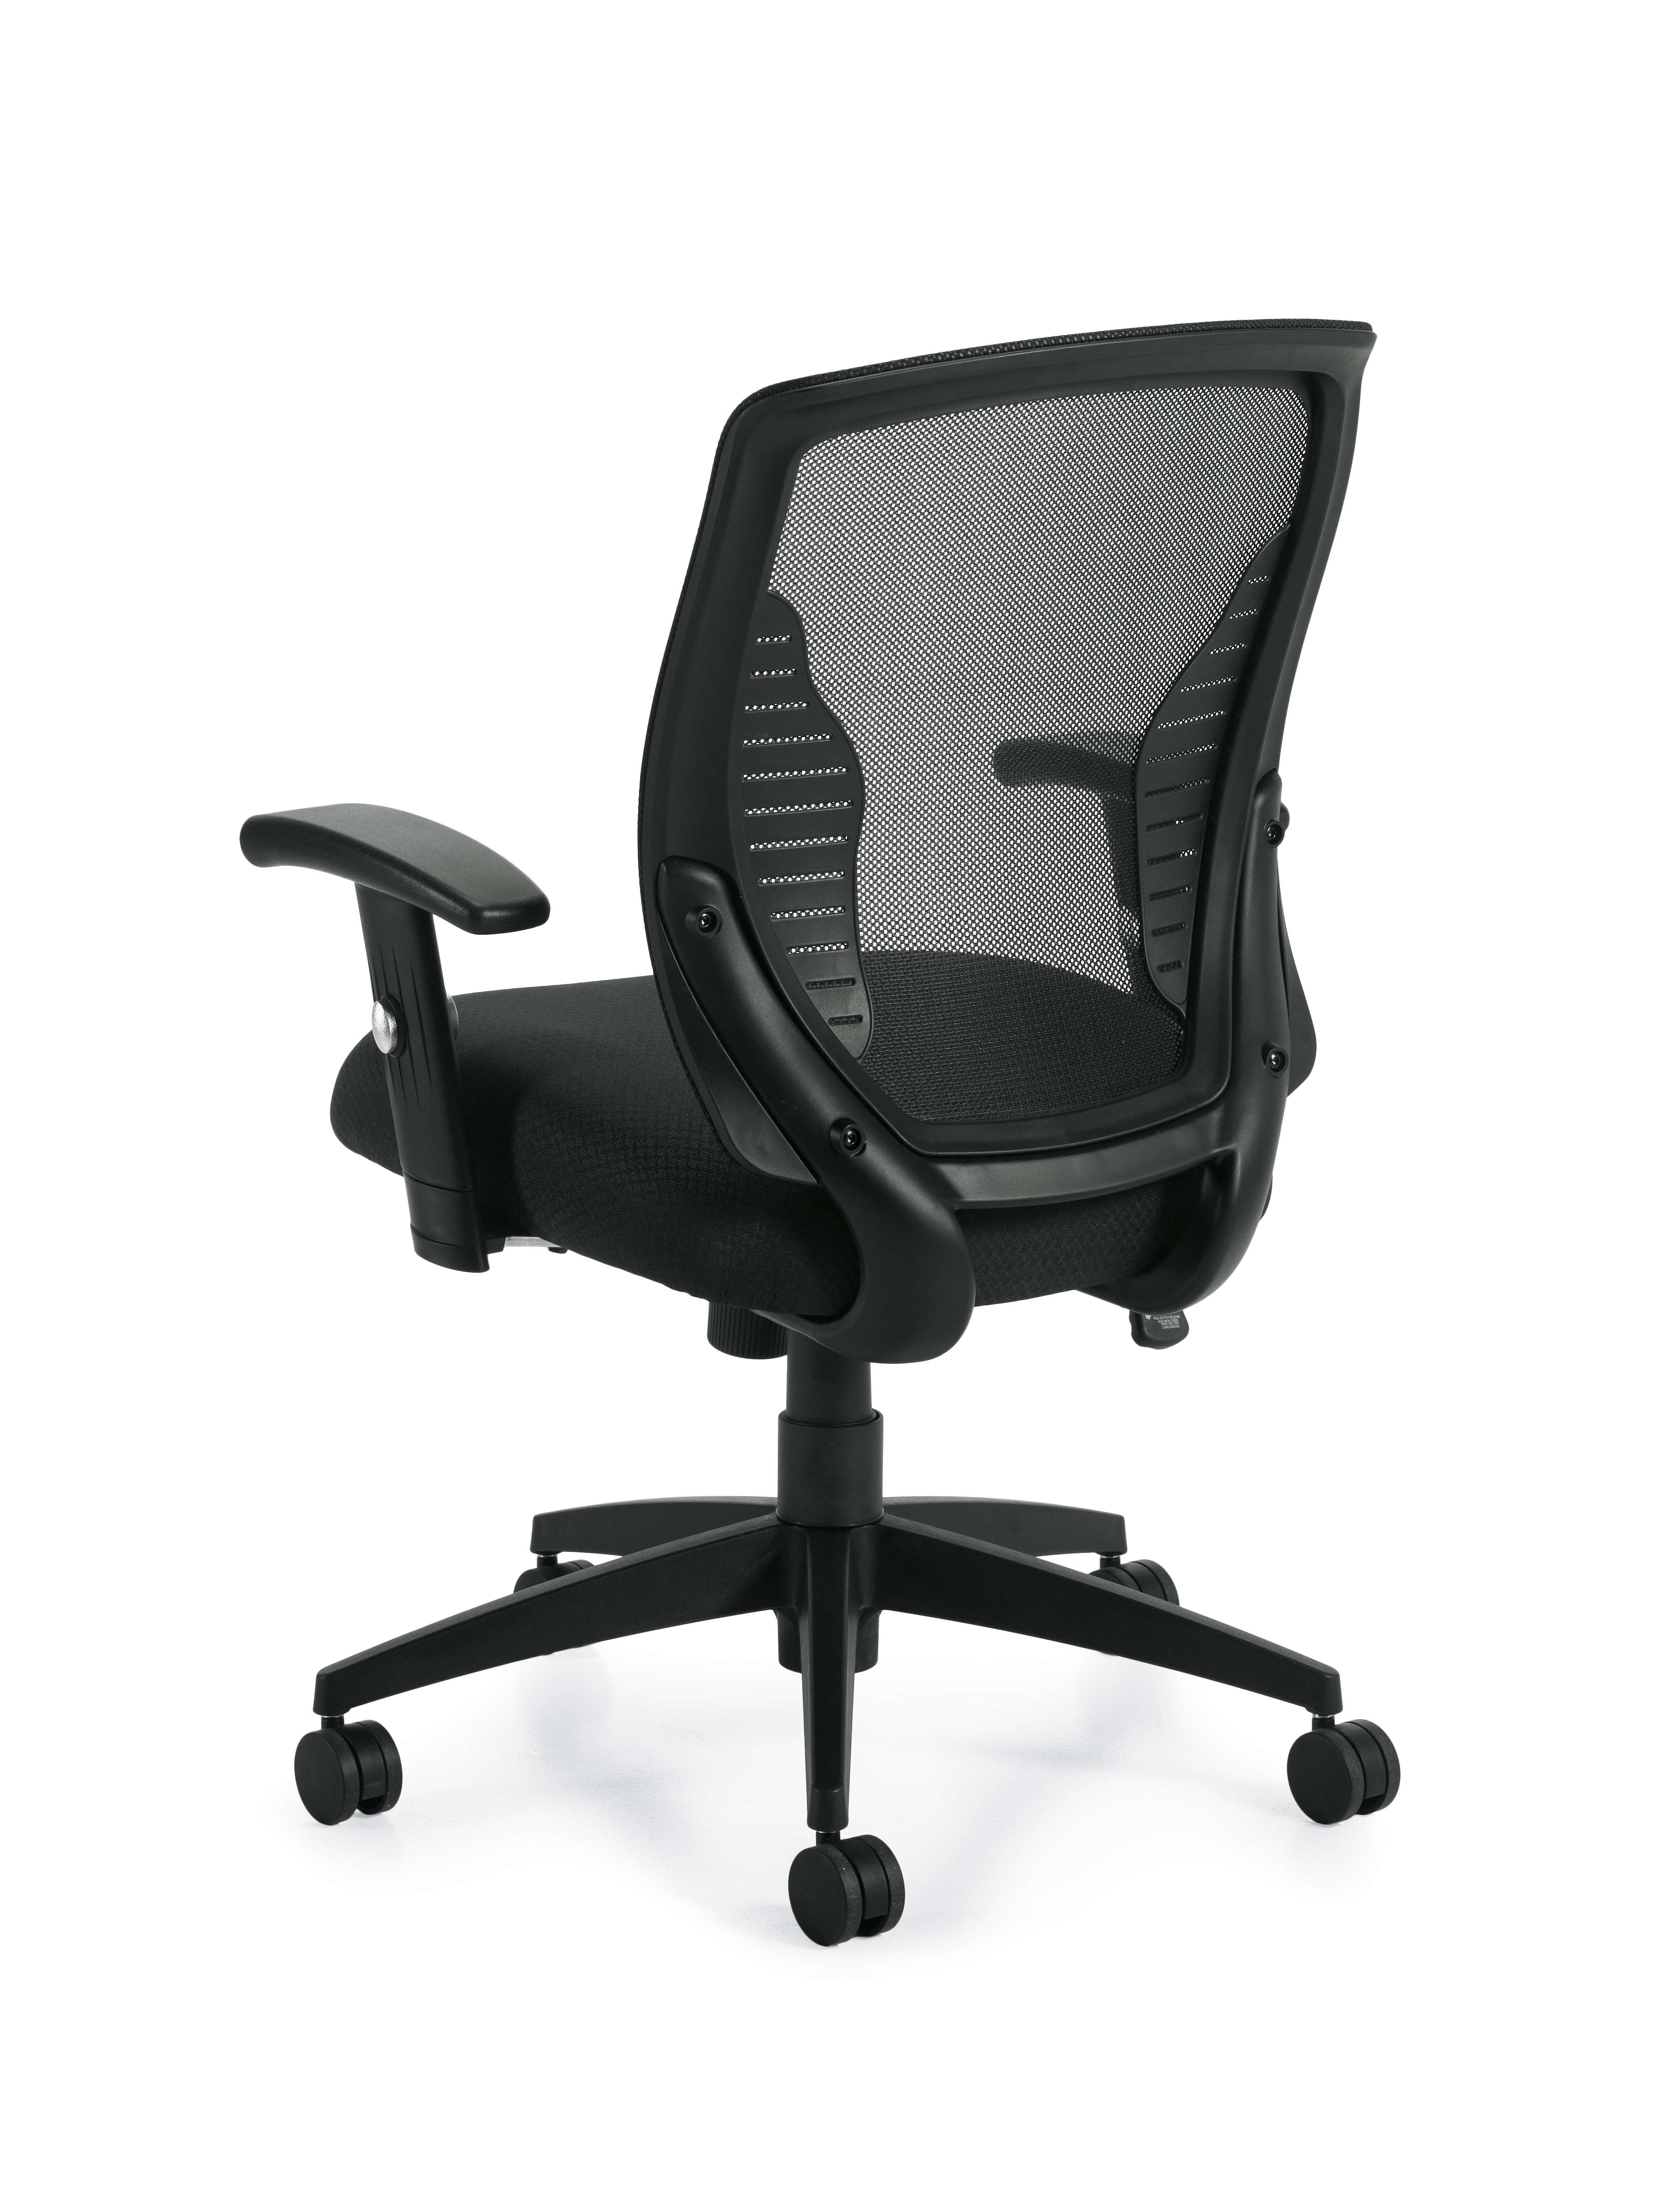 Mesh seat office chair rear view 1